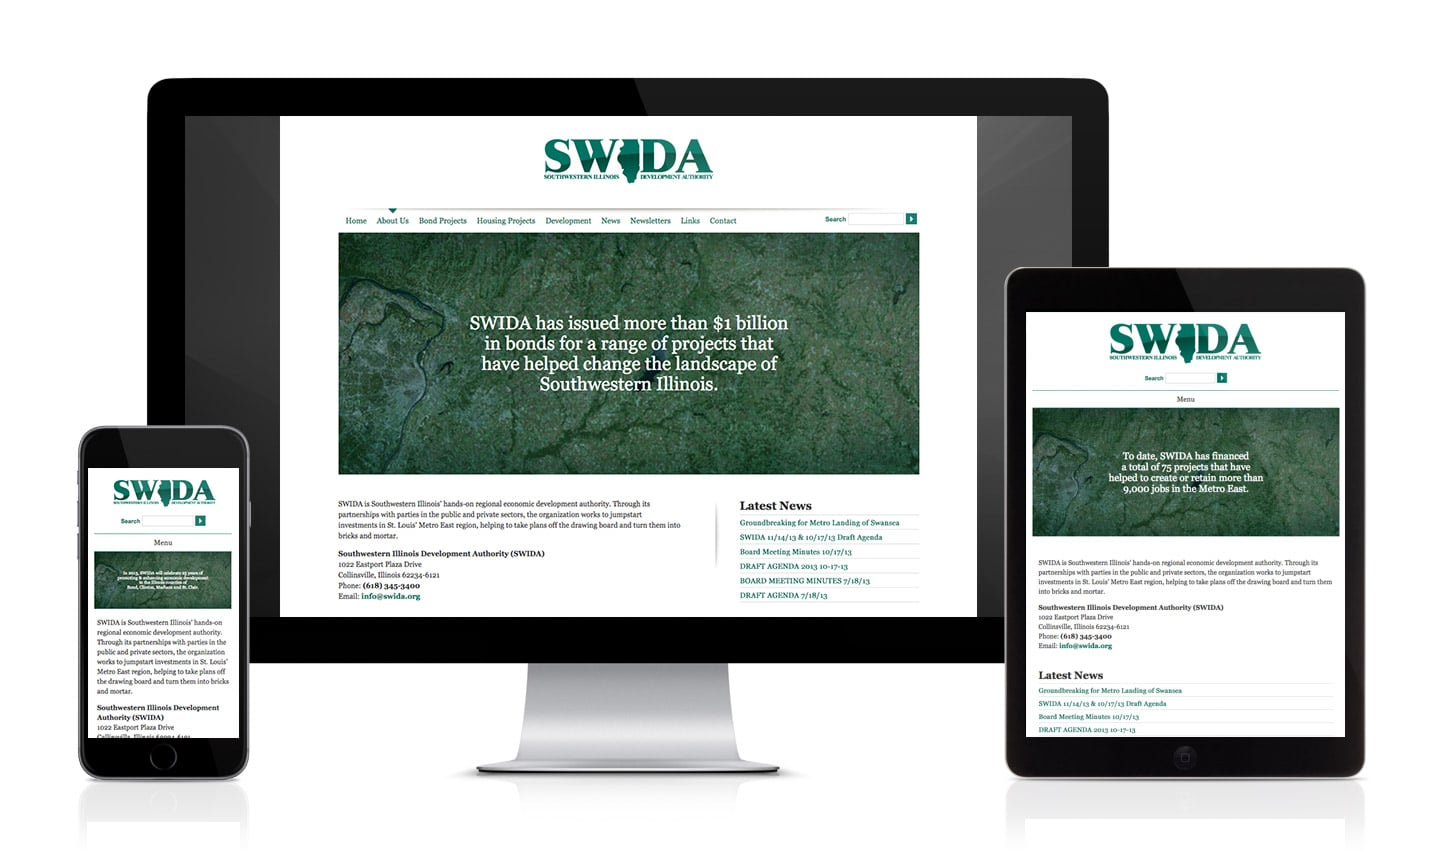 SWIDA Website